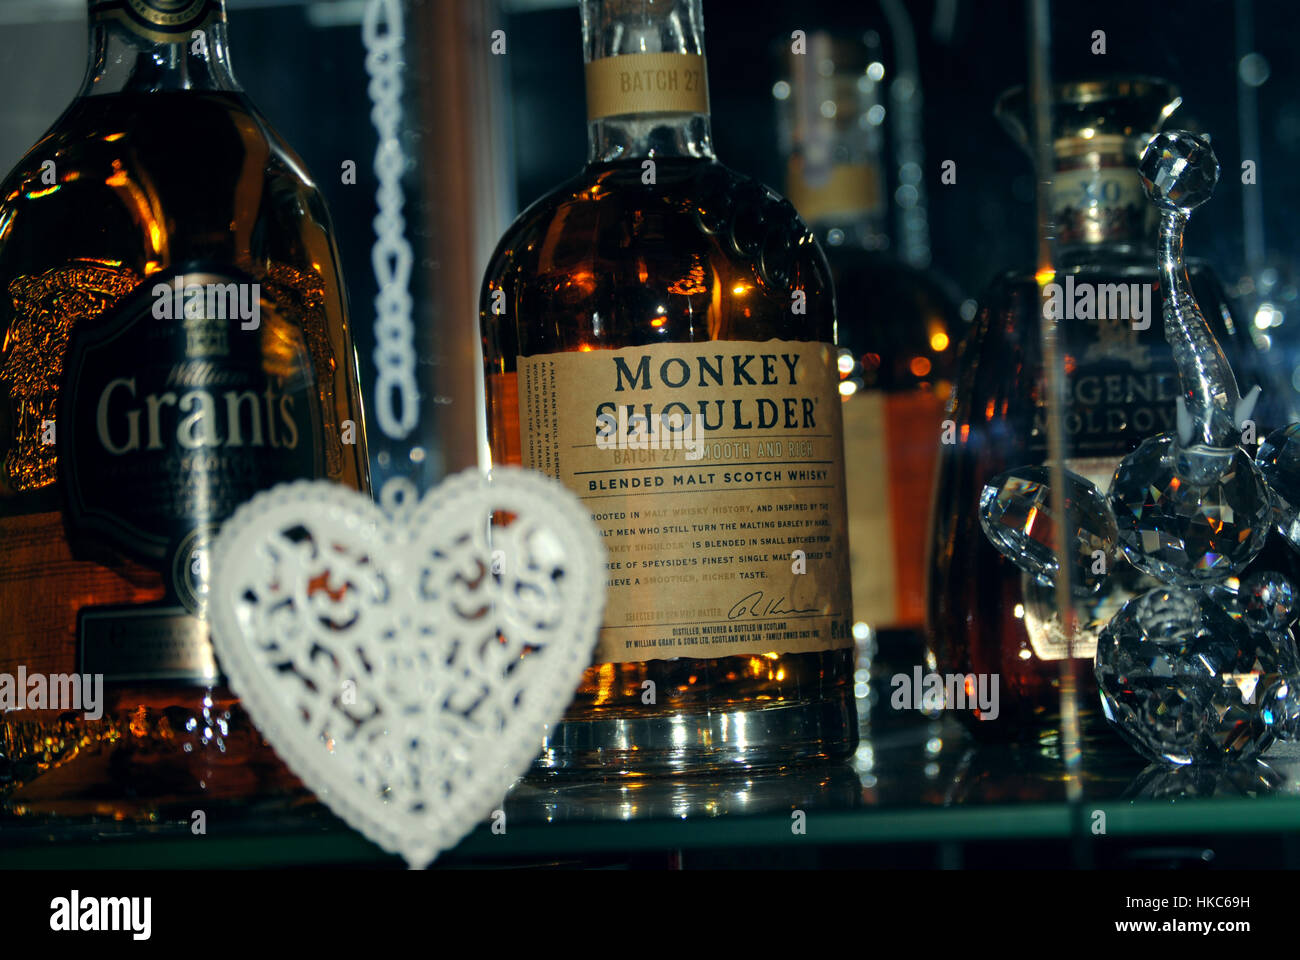 #Drinks from bar, #high quality #whisky photo. - Stock Image